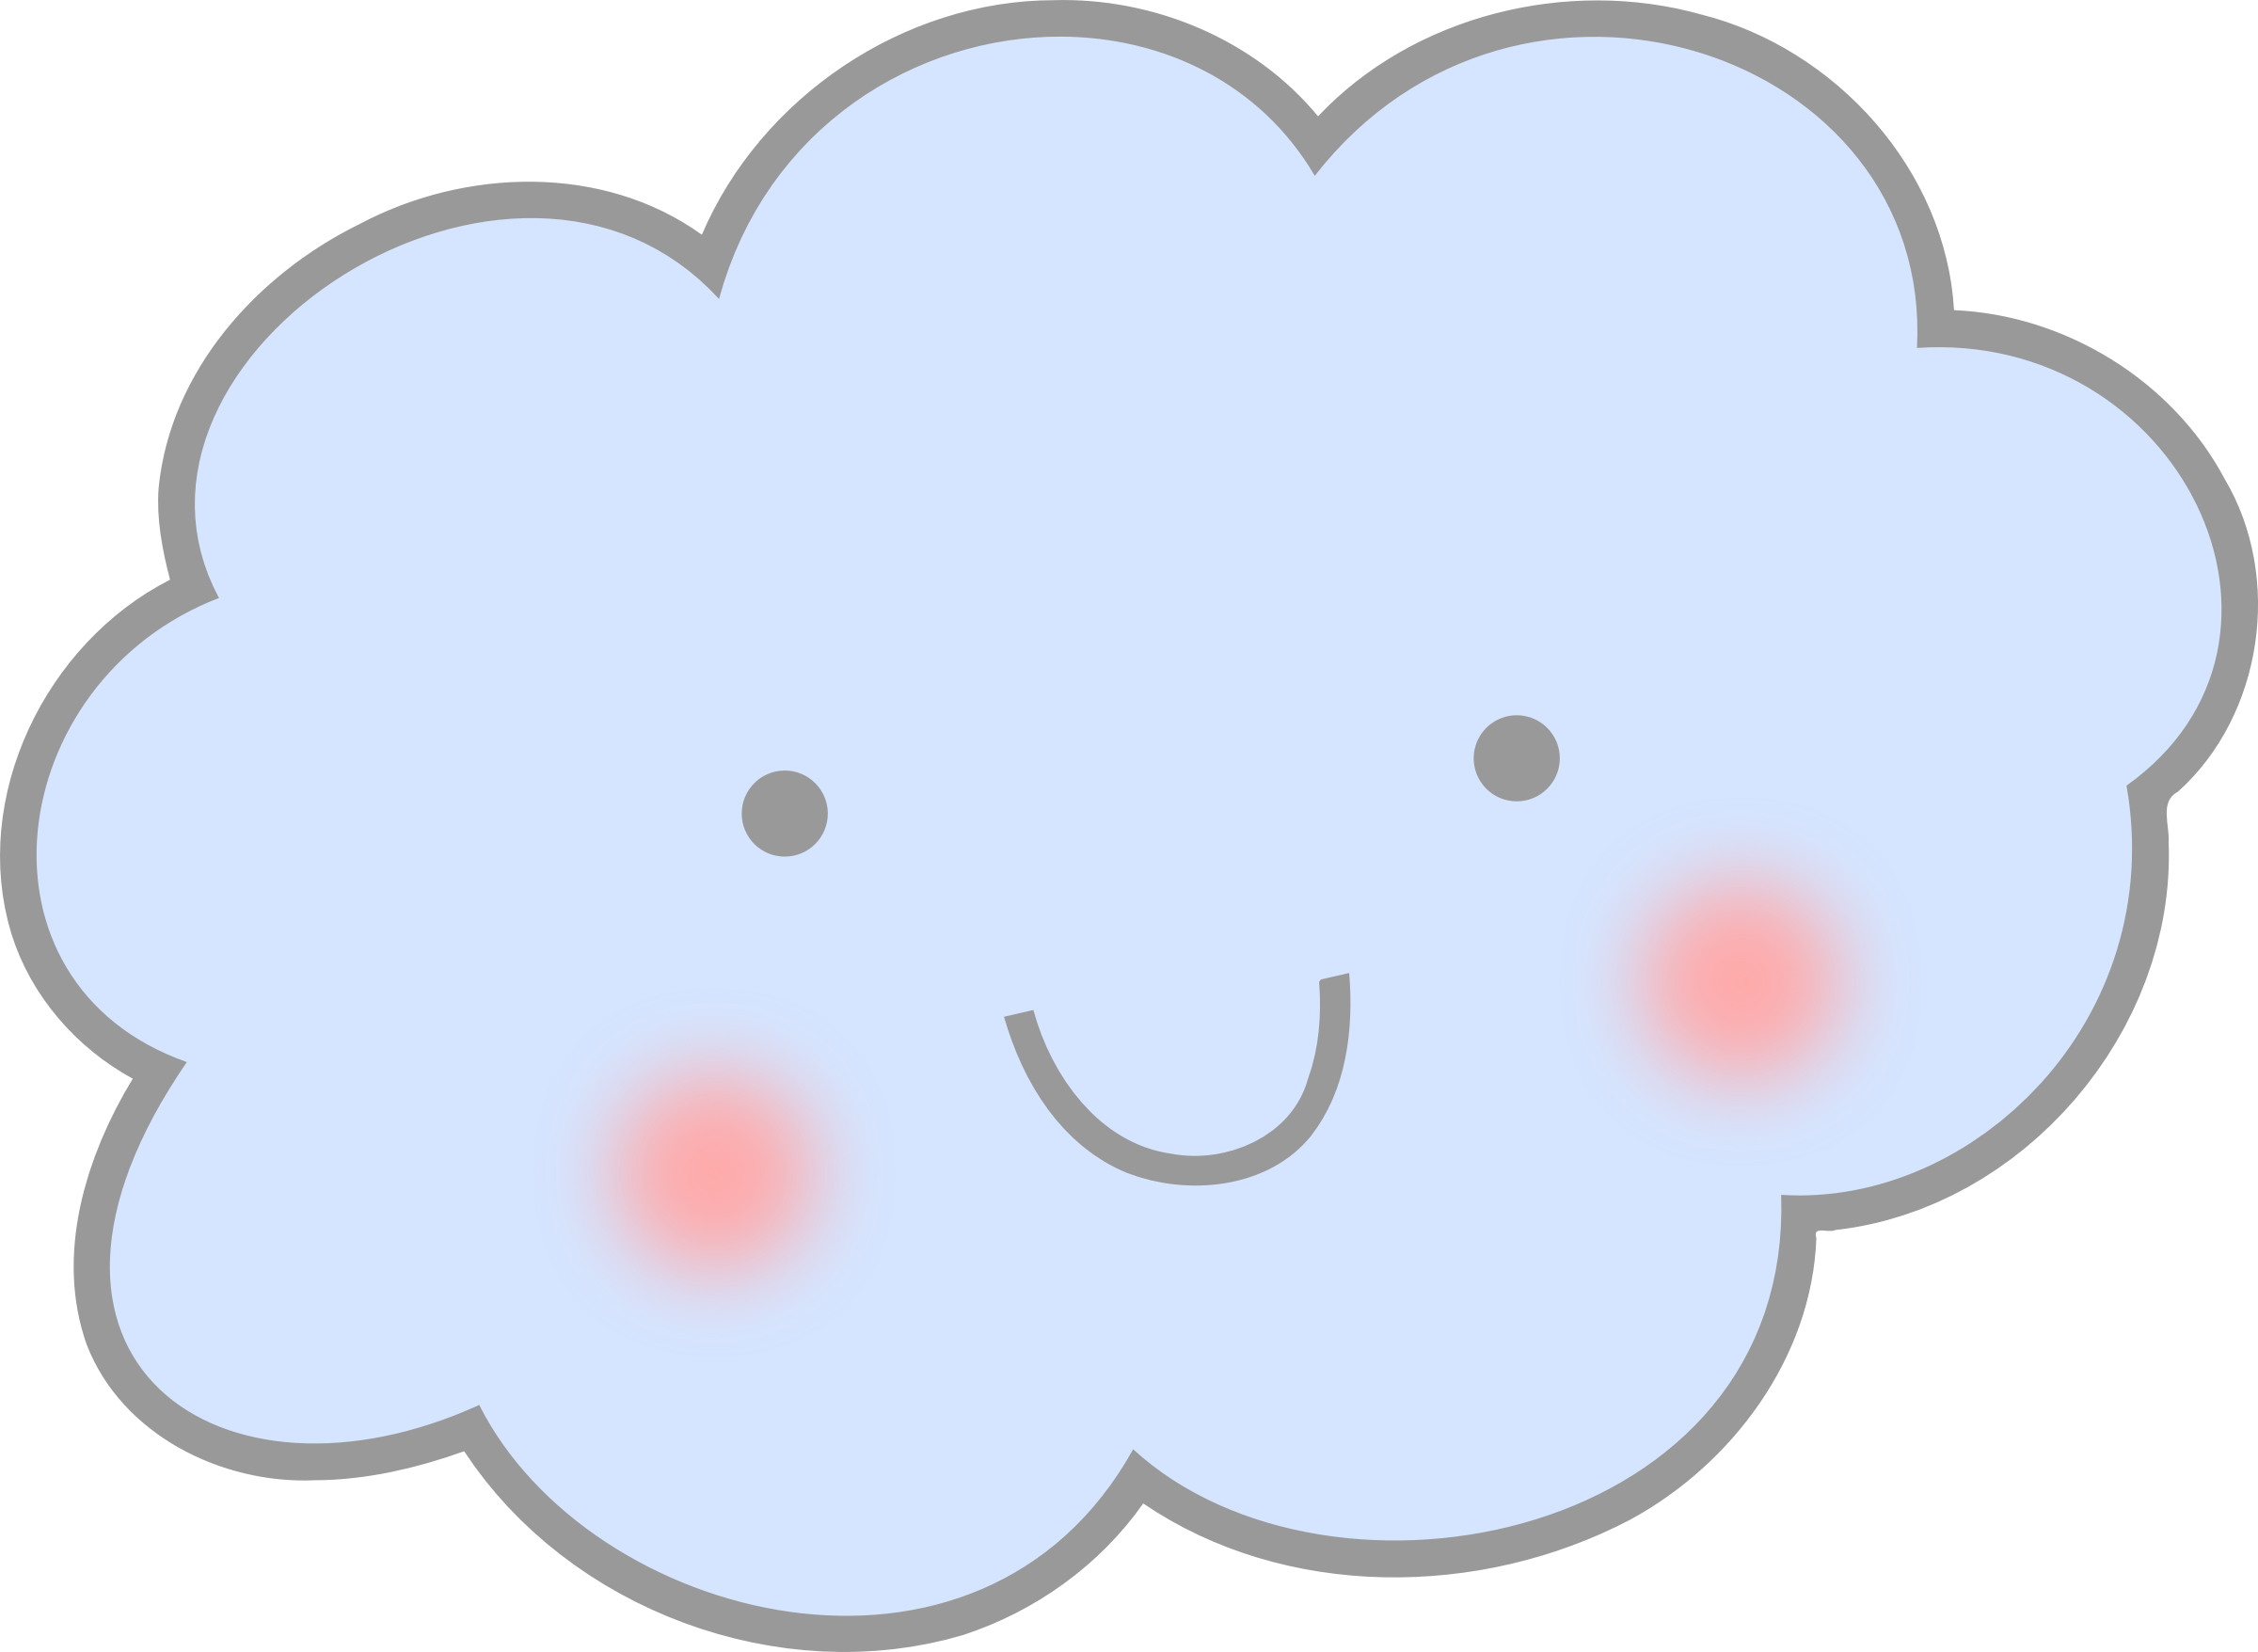 Cloud clipart cute.